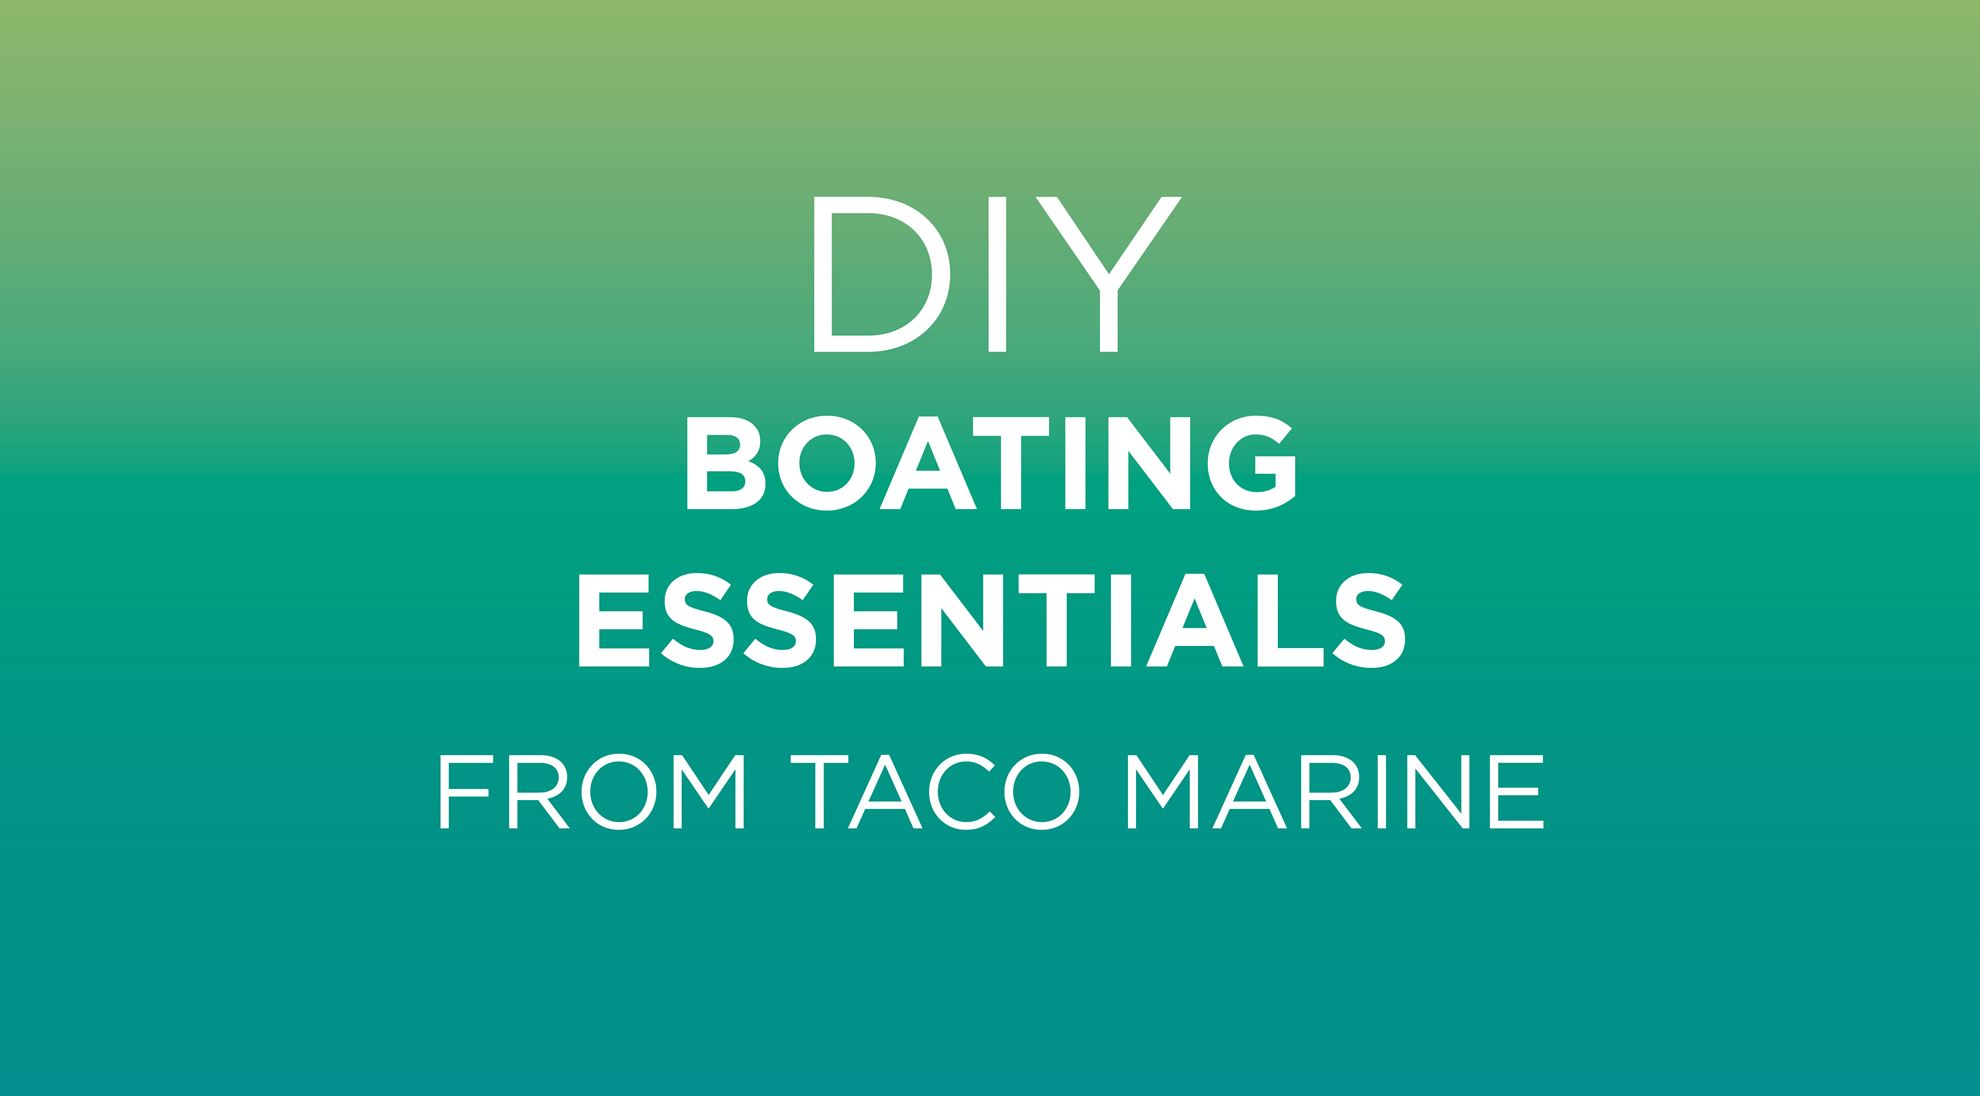 DIY Boating Essentials From TACO Marine